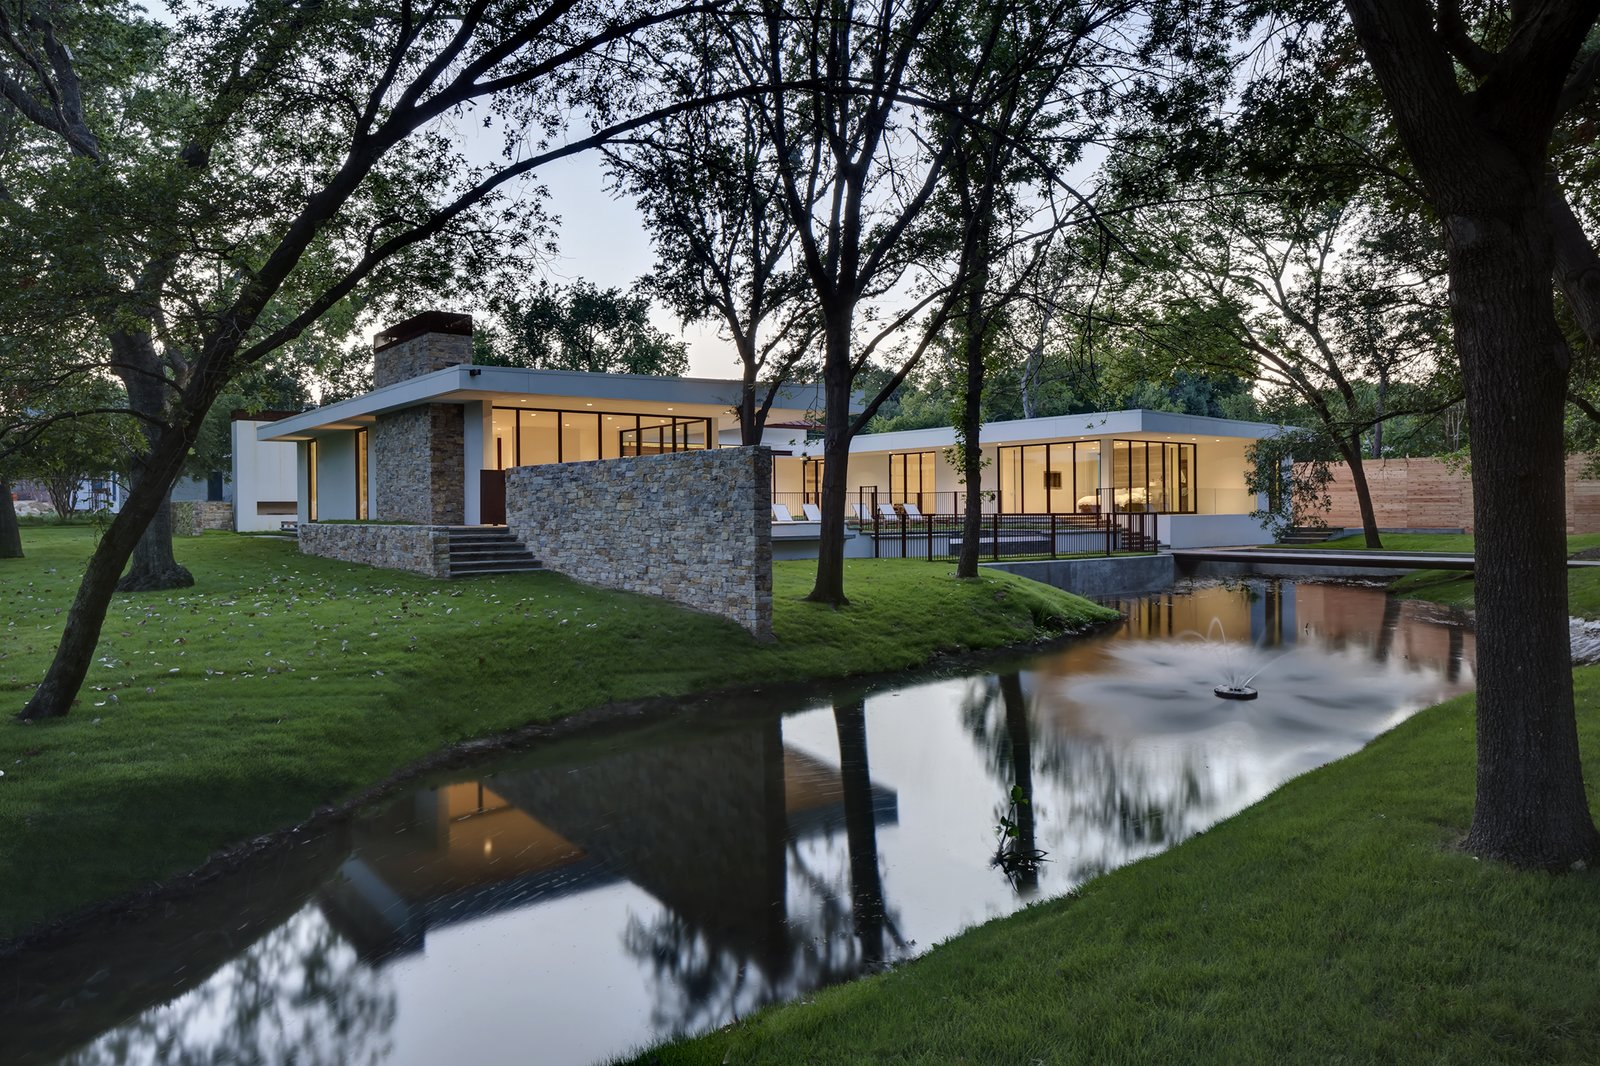 Privacy was important to the family, but they also wanted large expanses of glass through which to enjoy the trees and pond. The solution was a clever C-shaped courtyard plan that shields the home's open interior.  Preston Hollow by Laura C. Mallonee